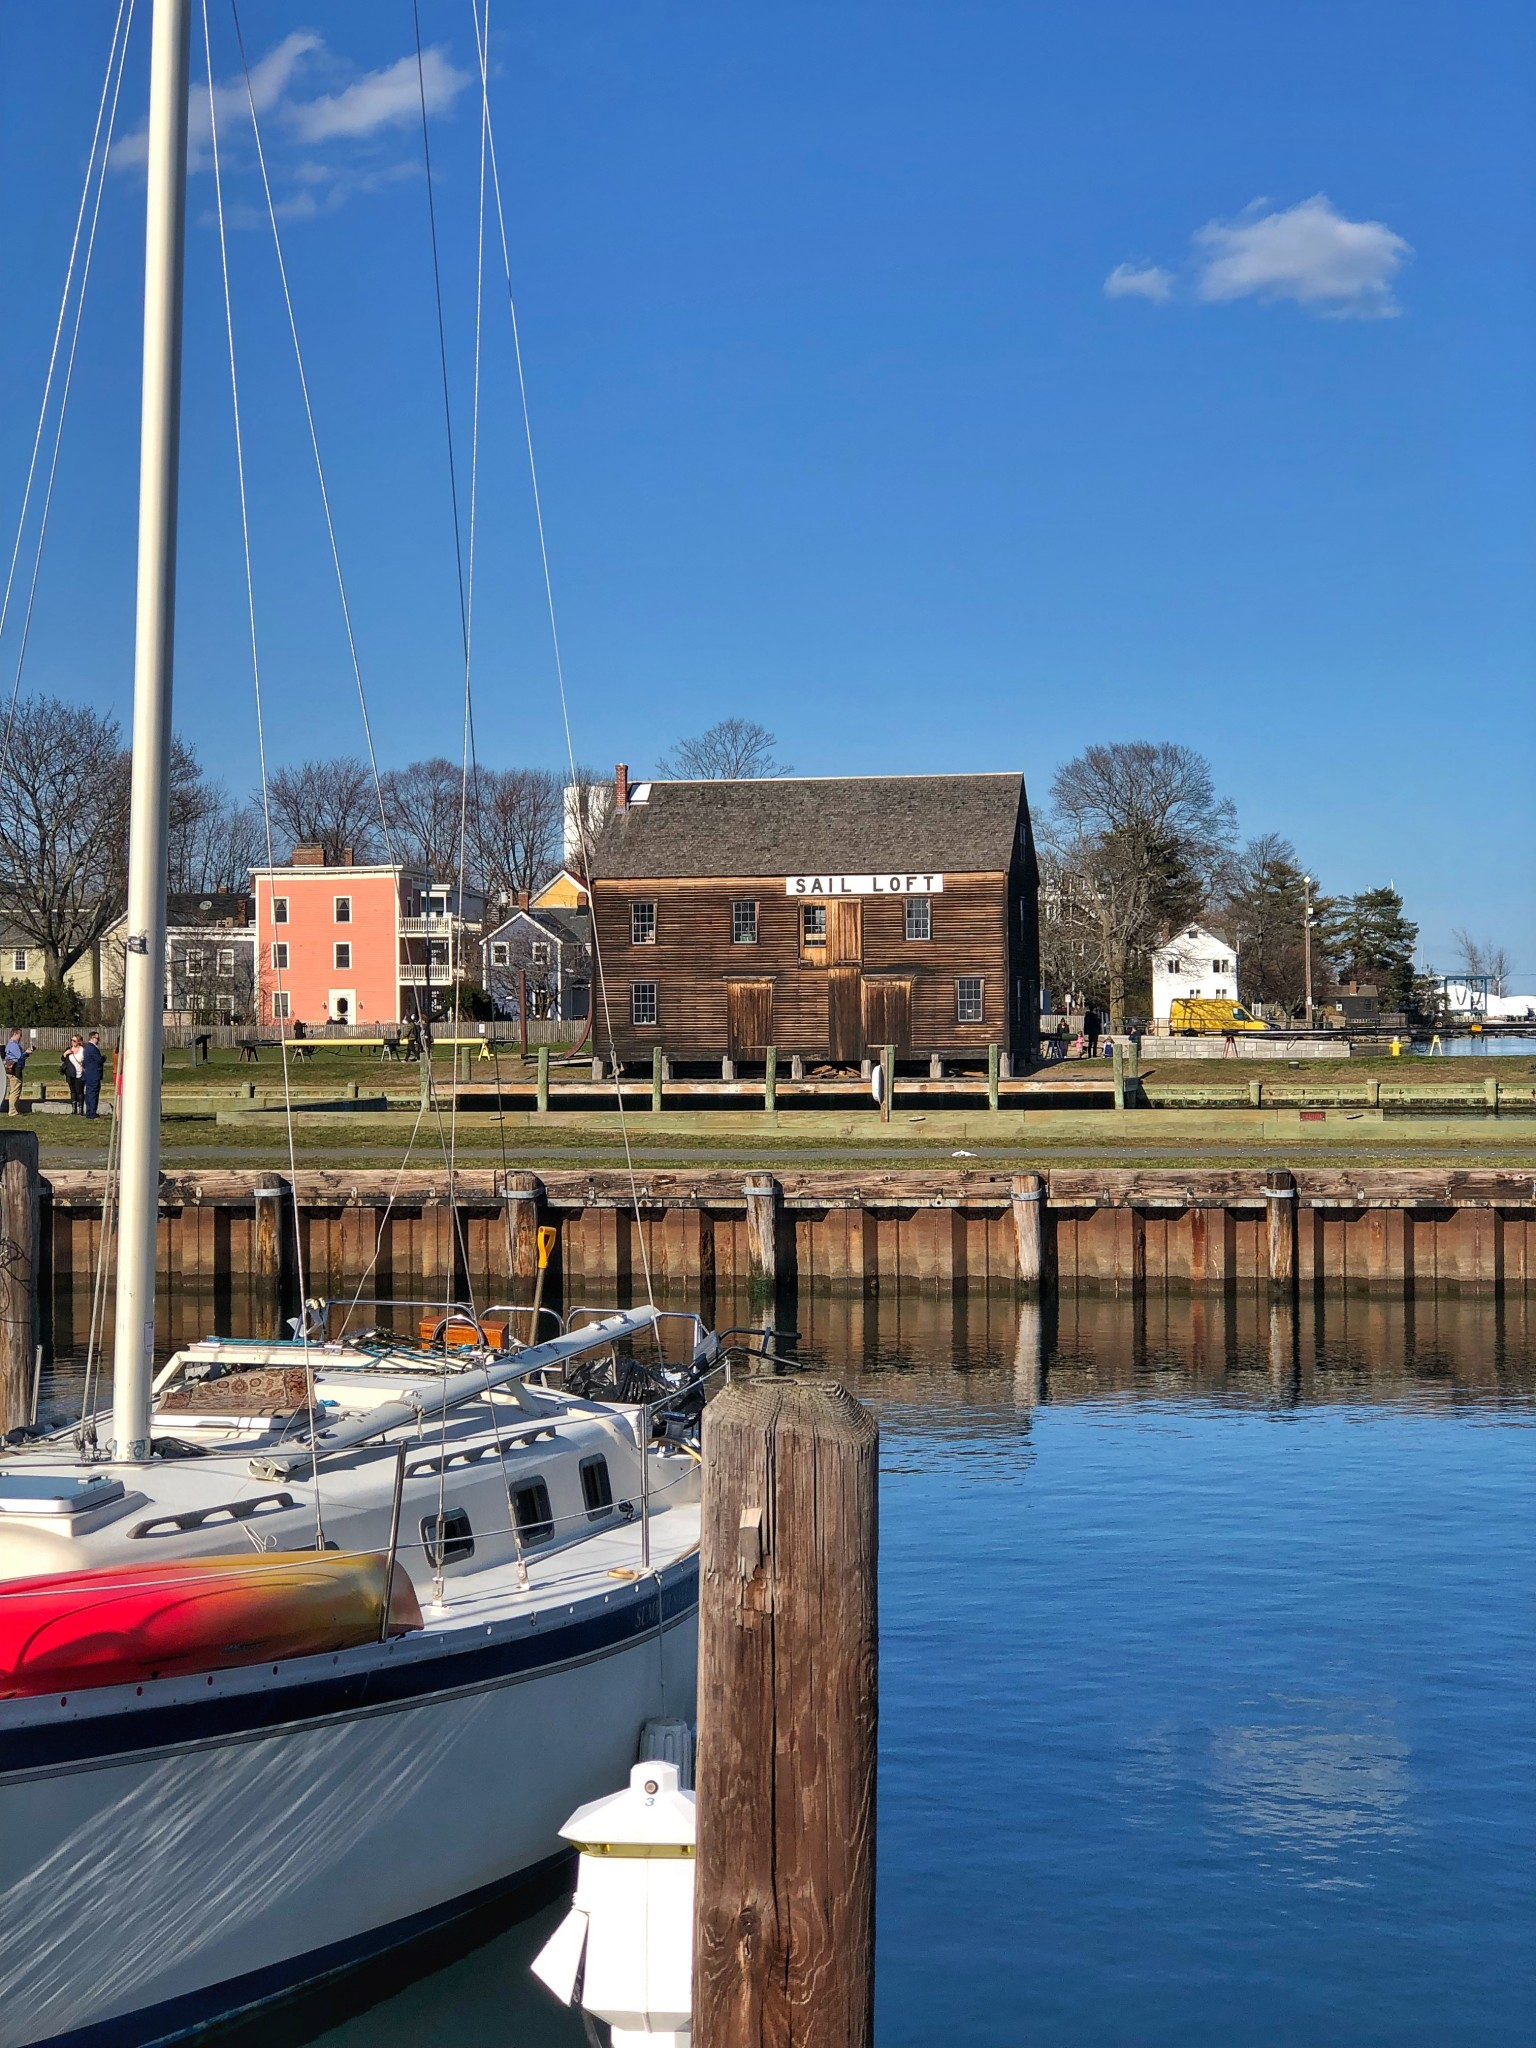 sail loft, derby wharf, salem, massachusetts, the-alyst.com